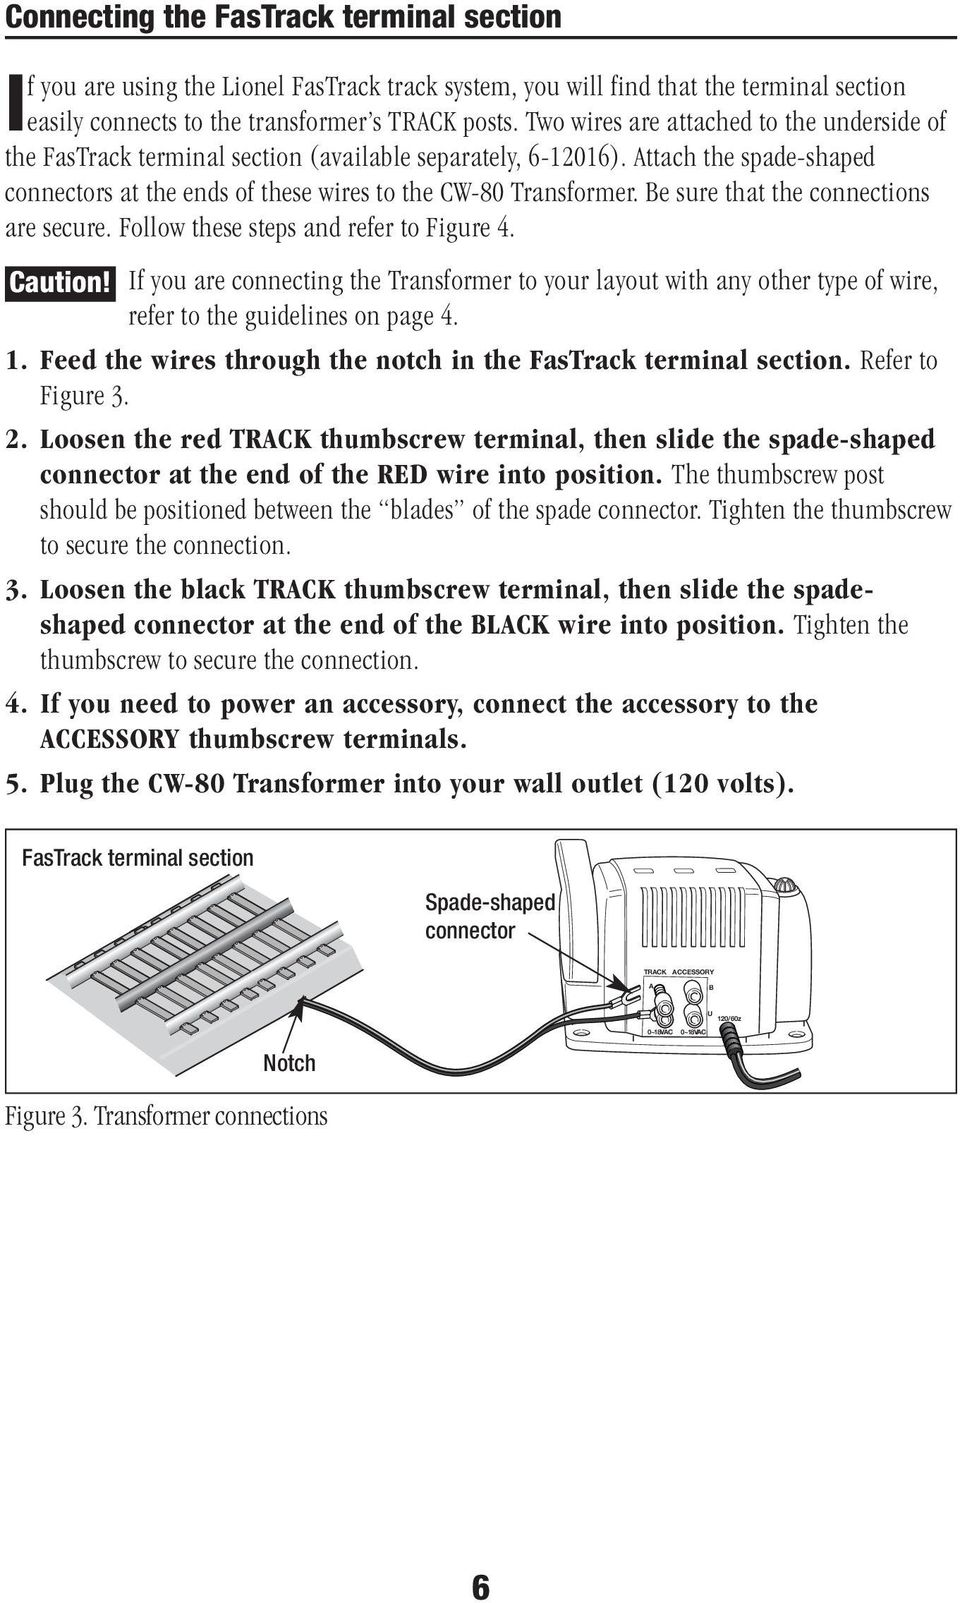 hight resolution of lionel cw 80 transformer owner s manual pdf on lionel fastrack wiring zw wiring diagram